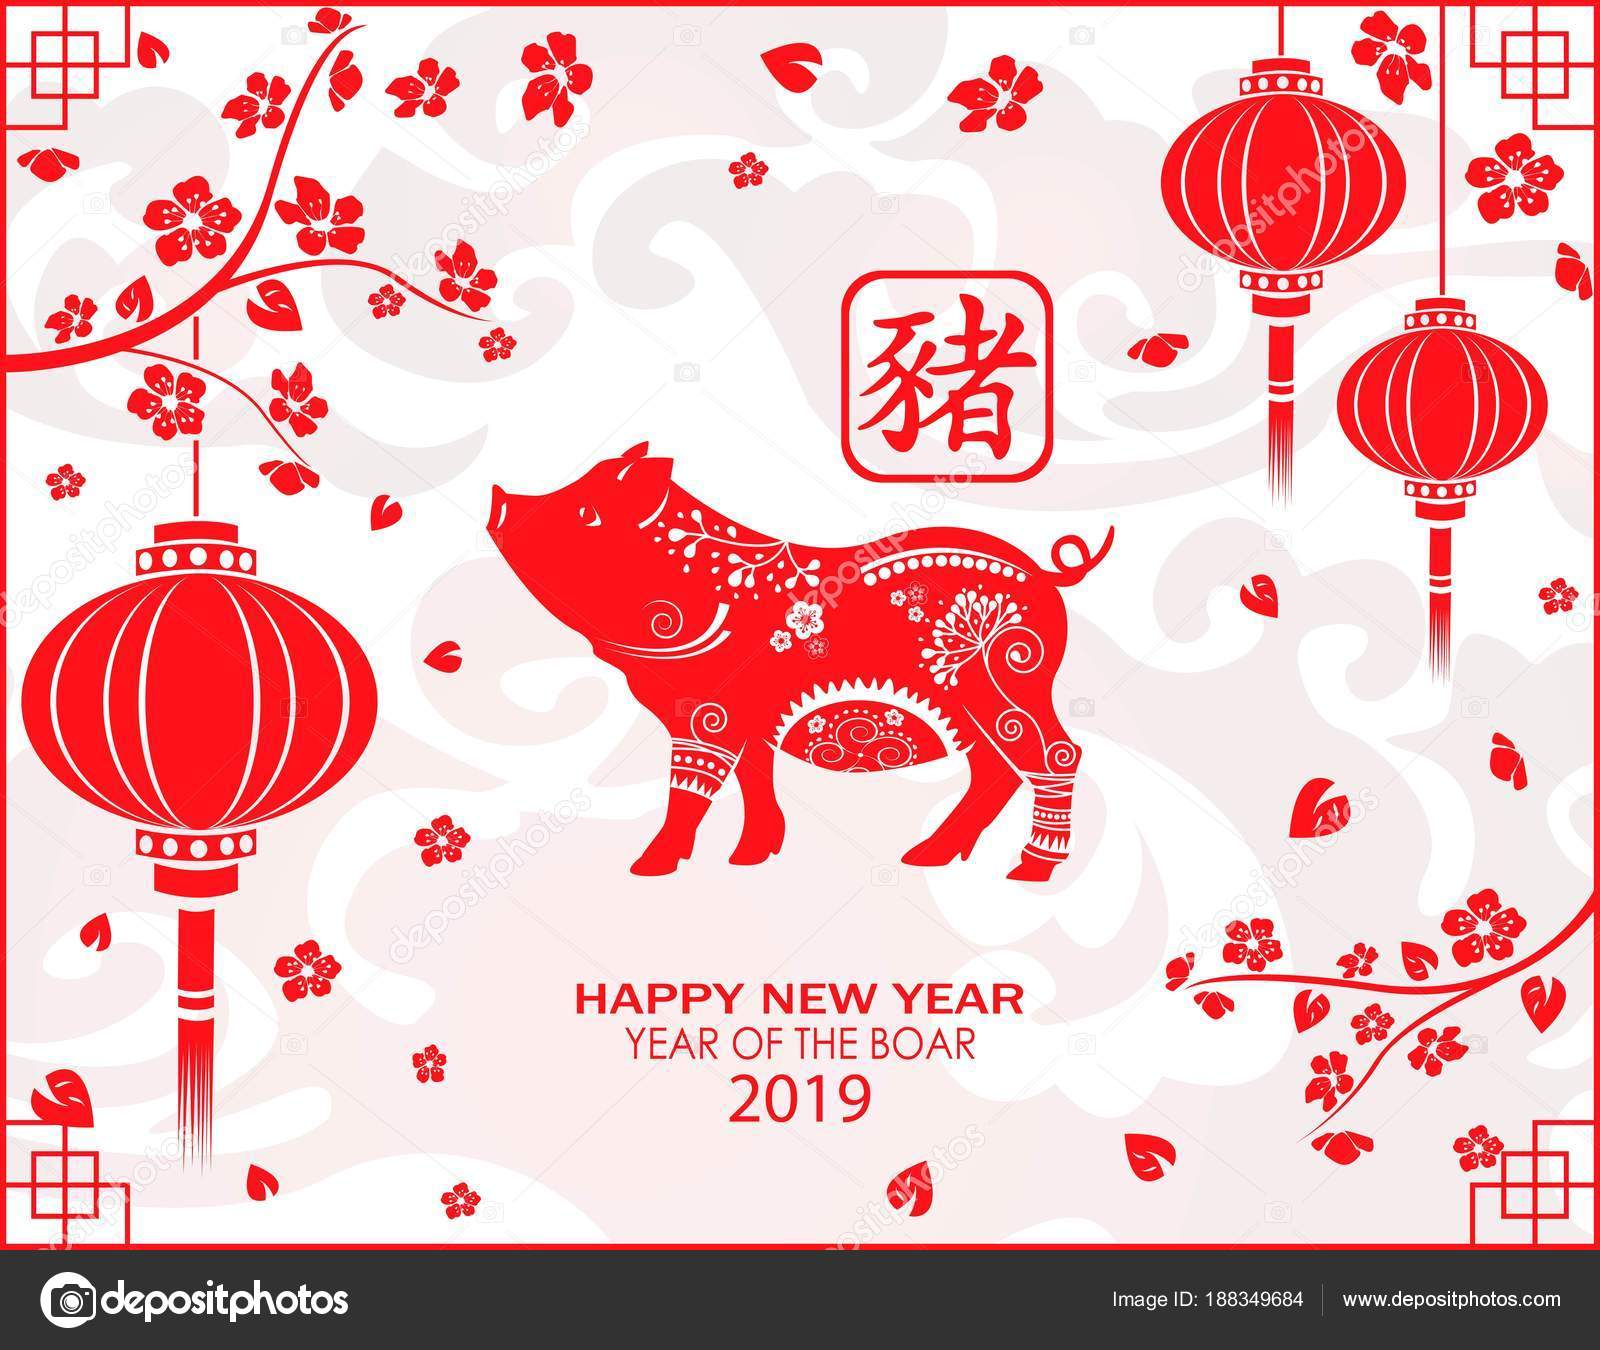 Happy chinese new year 2019 clip art.